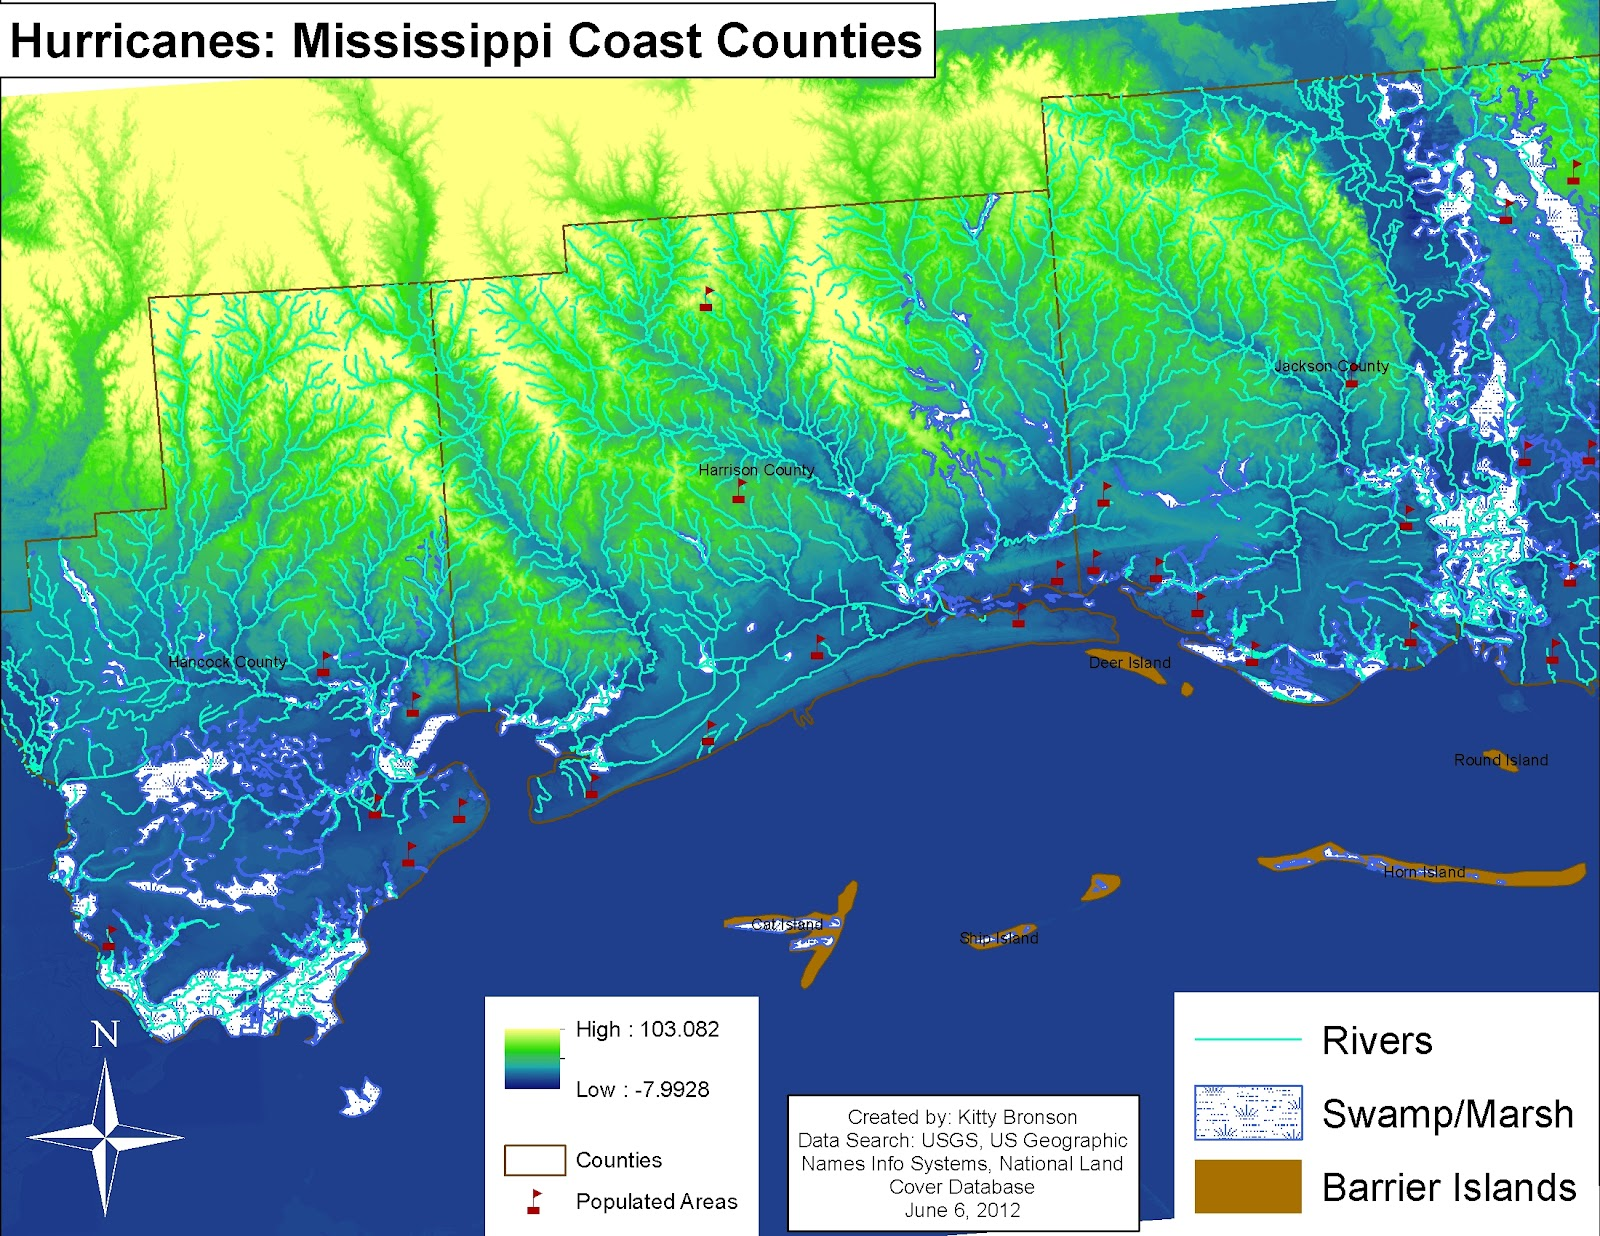 looking at the maps we can see that many of the populated areas are along the gulf coast and rivers the storm surge inundated the coastal communities